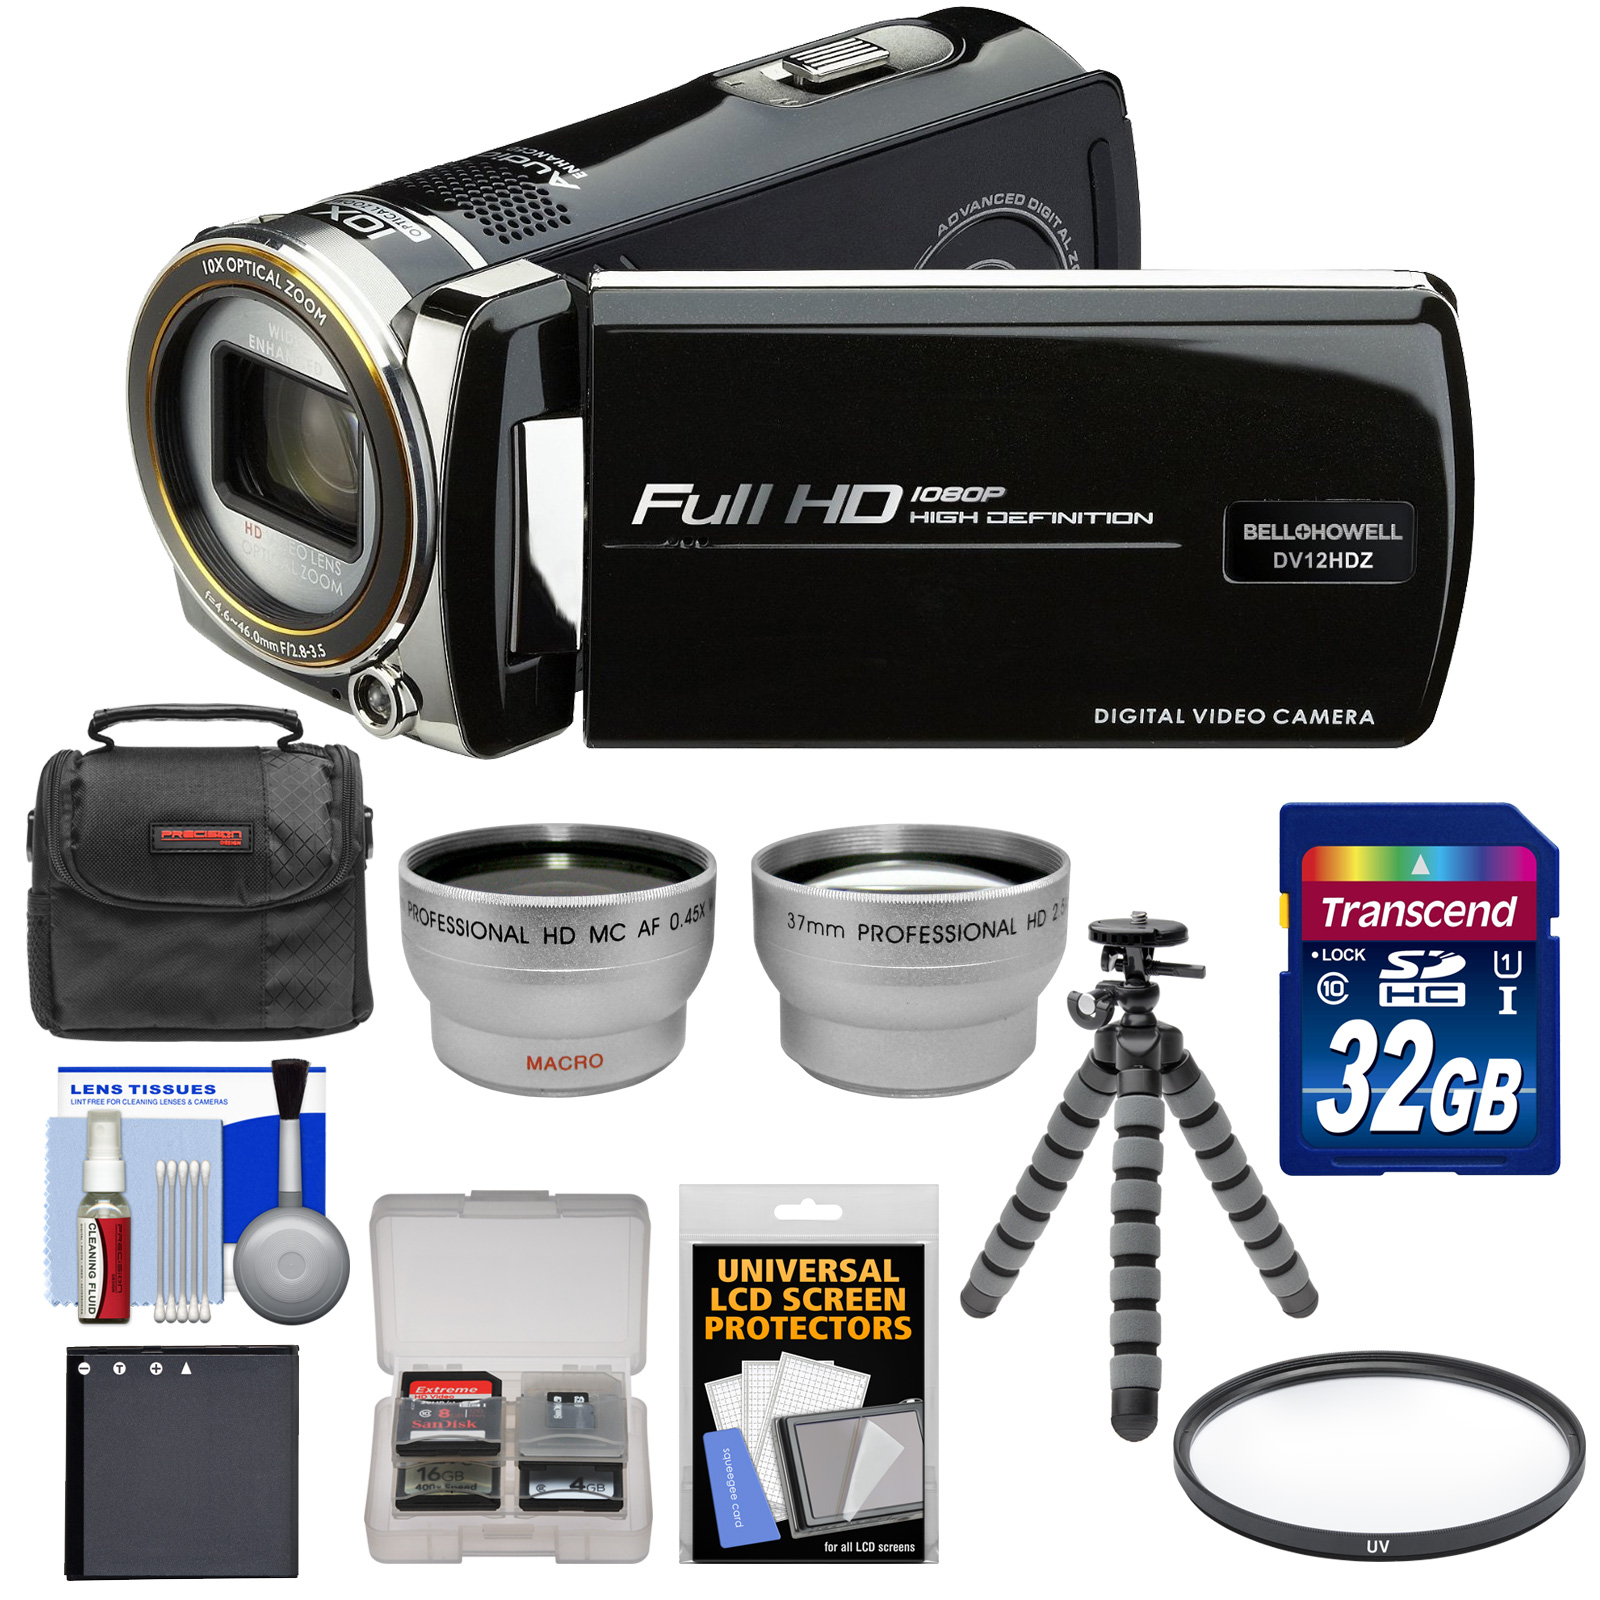 Bell + Howell Bell & Howell DV12HDZ 1080p HD Video Camera Camcorder (Black) with 32GB Card + Battery + Case + Flex Tripod + Filter + Tele / Wide Lens Kit